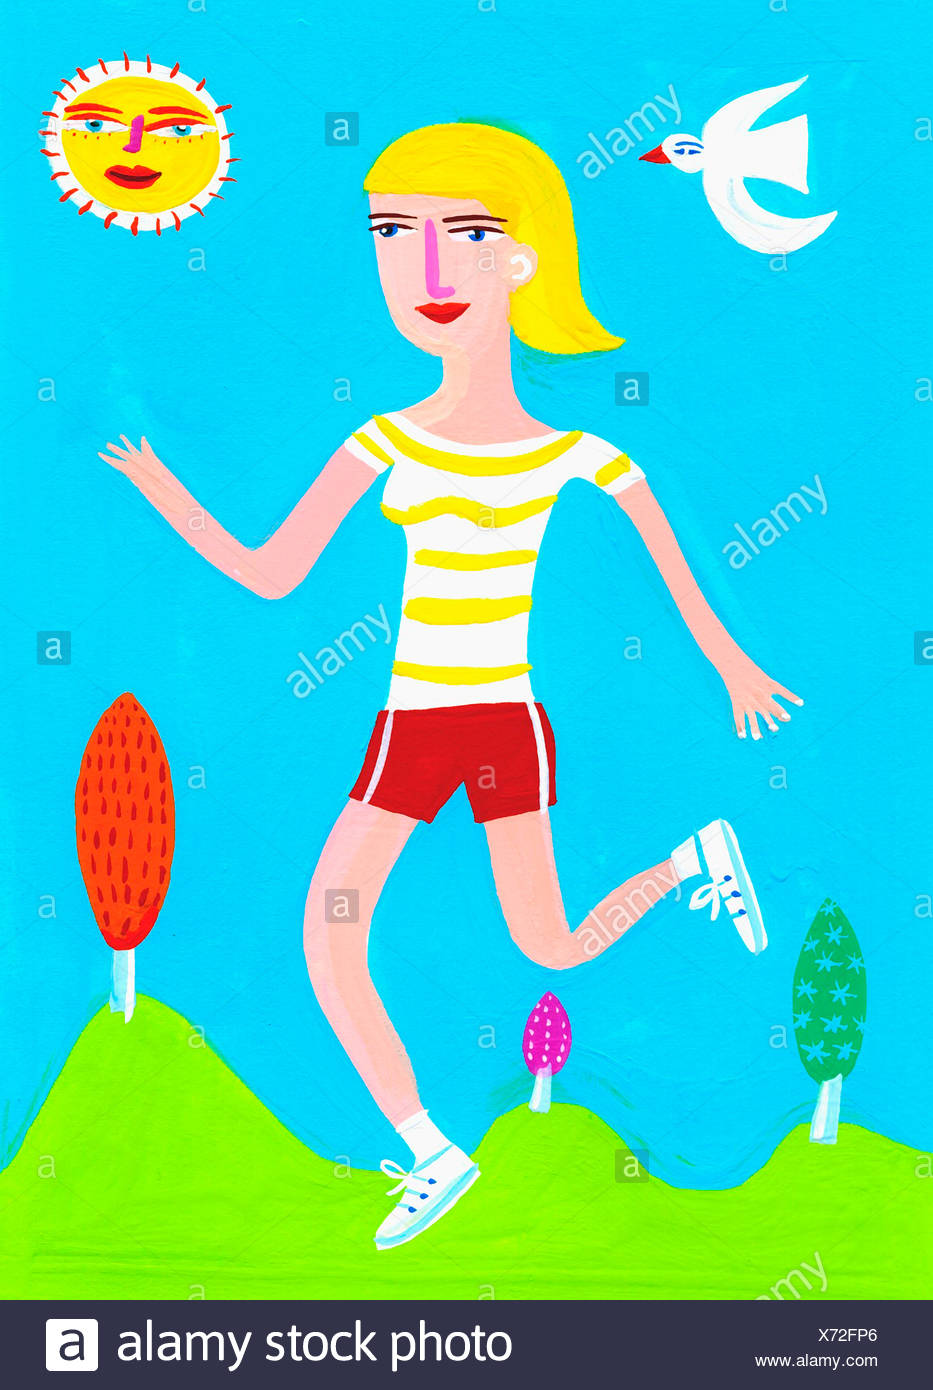 Woman running on sunny day - Stock Image